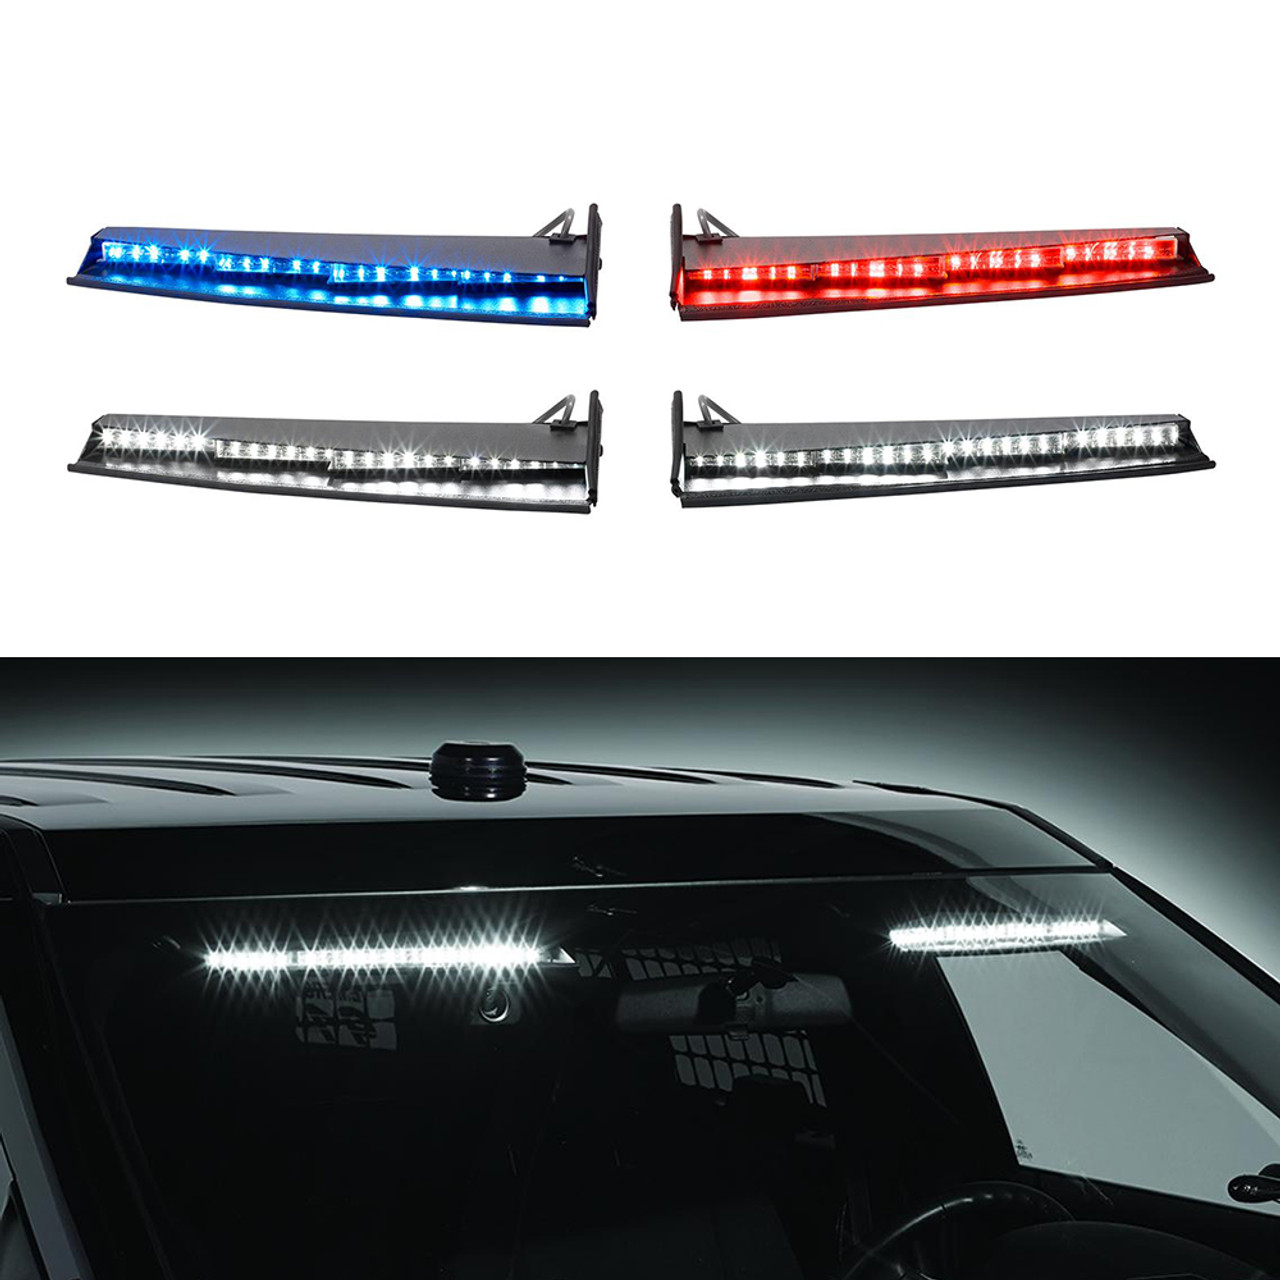 Federal Signal Ford SUV Police Interceptor Utility 2018-2019 Interior Light Bar Spectralux ILS Dual Color Low Profile, In Stock